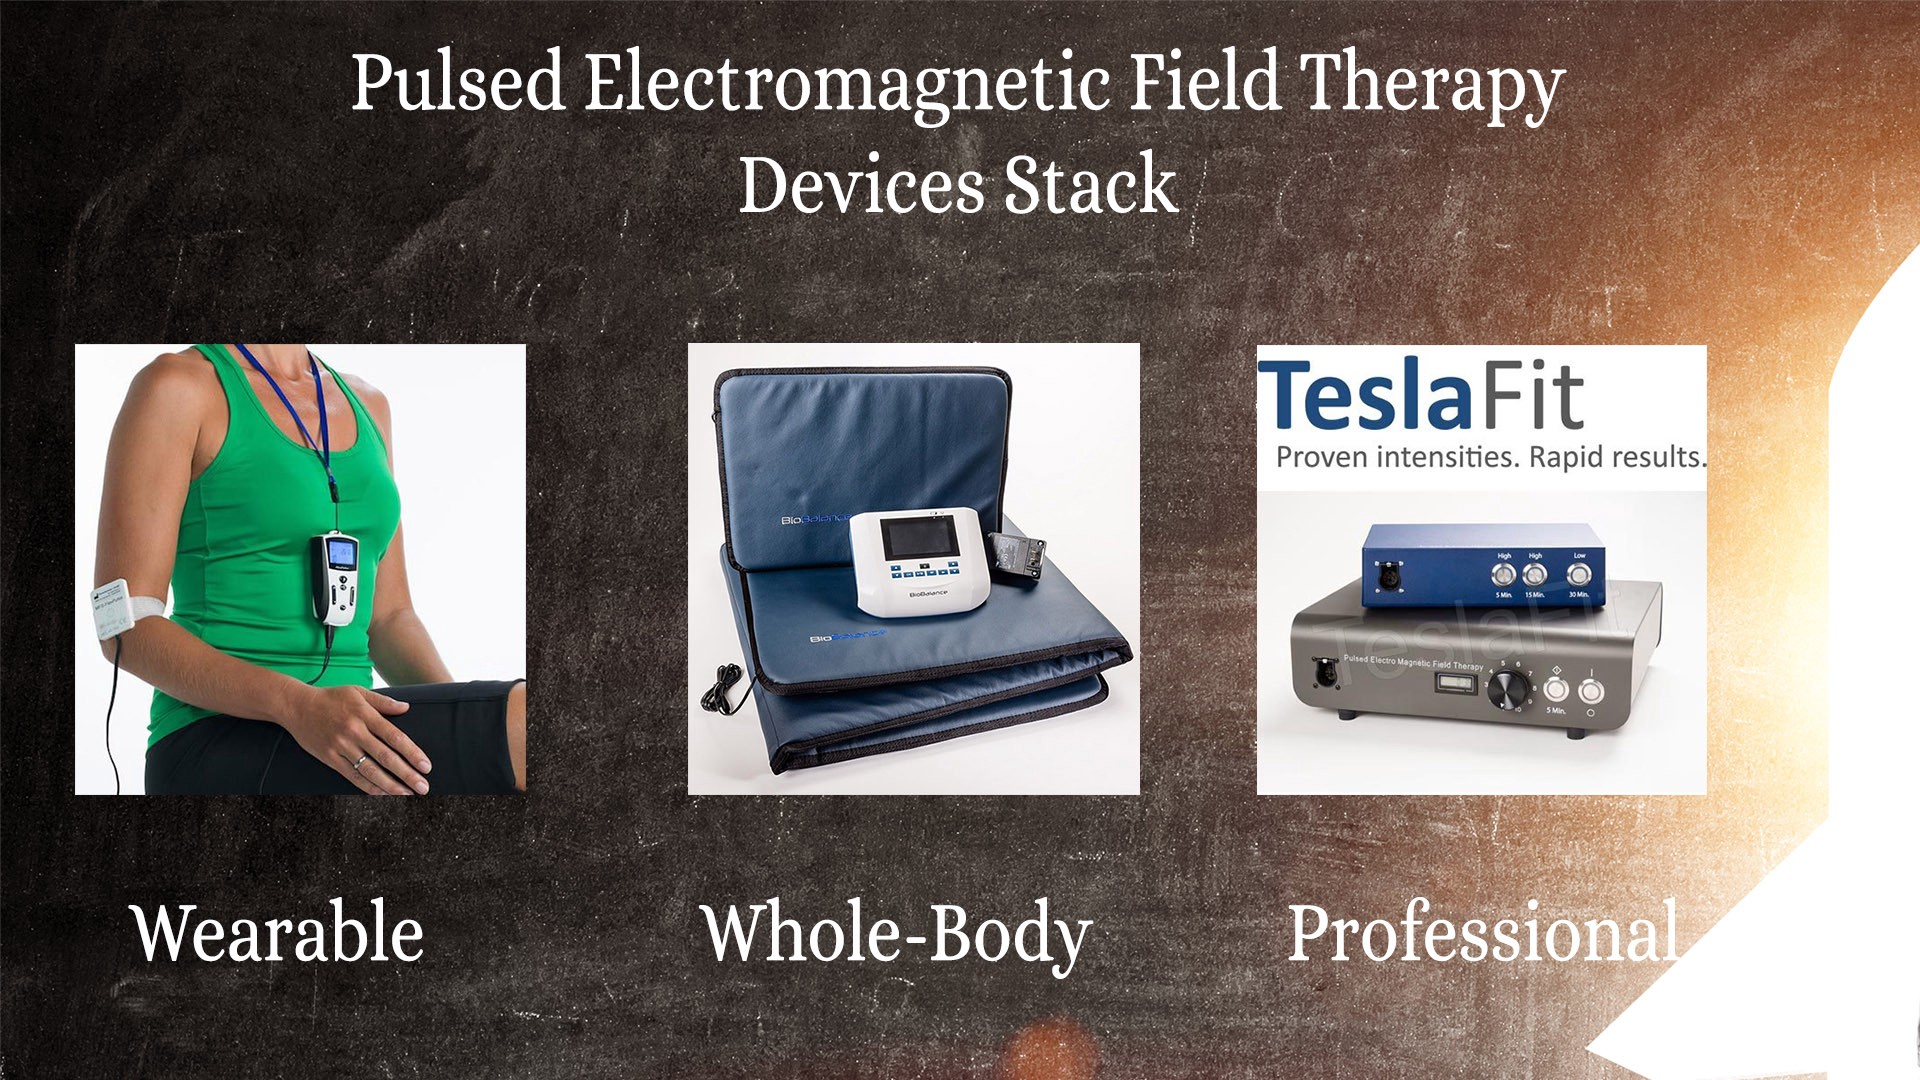 PEMF devices stack for 2019 - Magnetic Stimulation Therapy